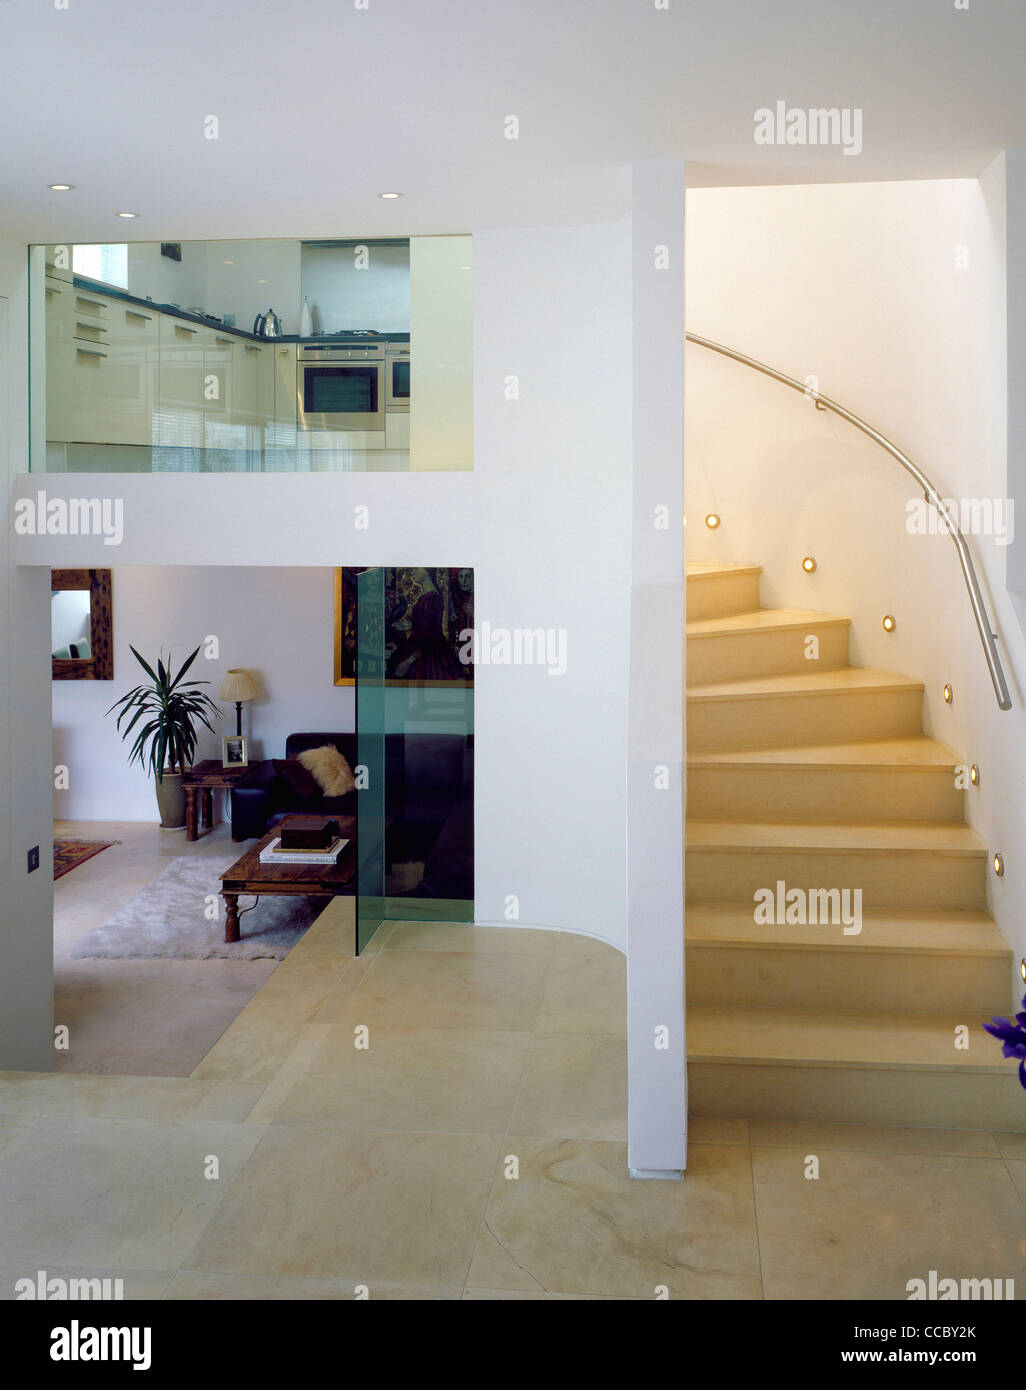 PRIVATE HOUSE HALLWAY STAIRS - Stock Image